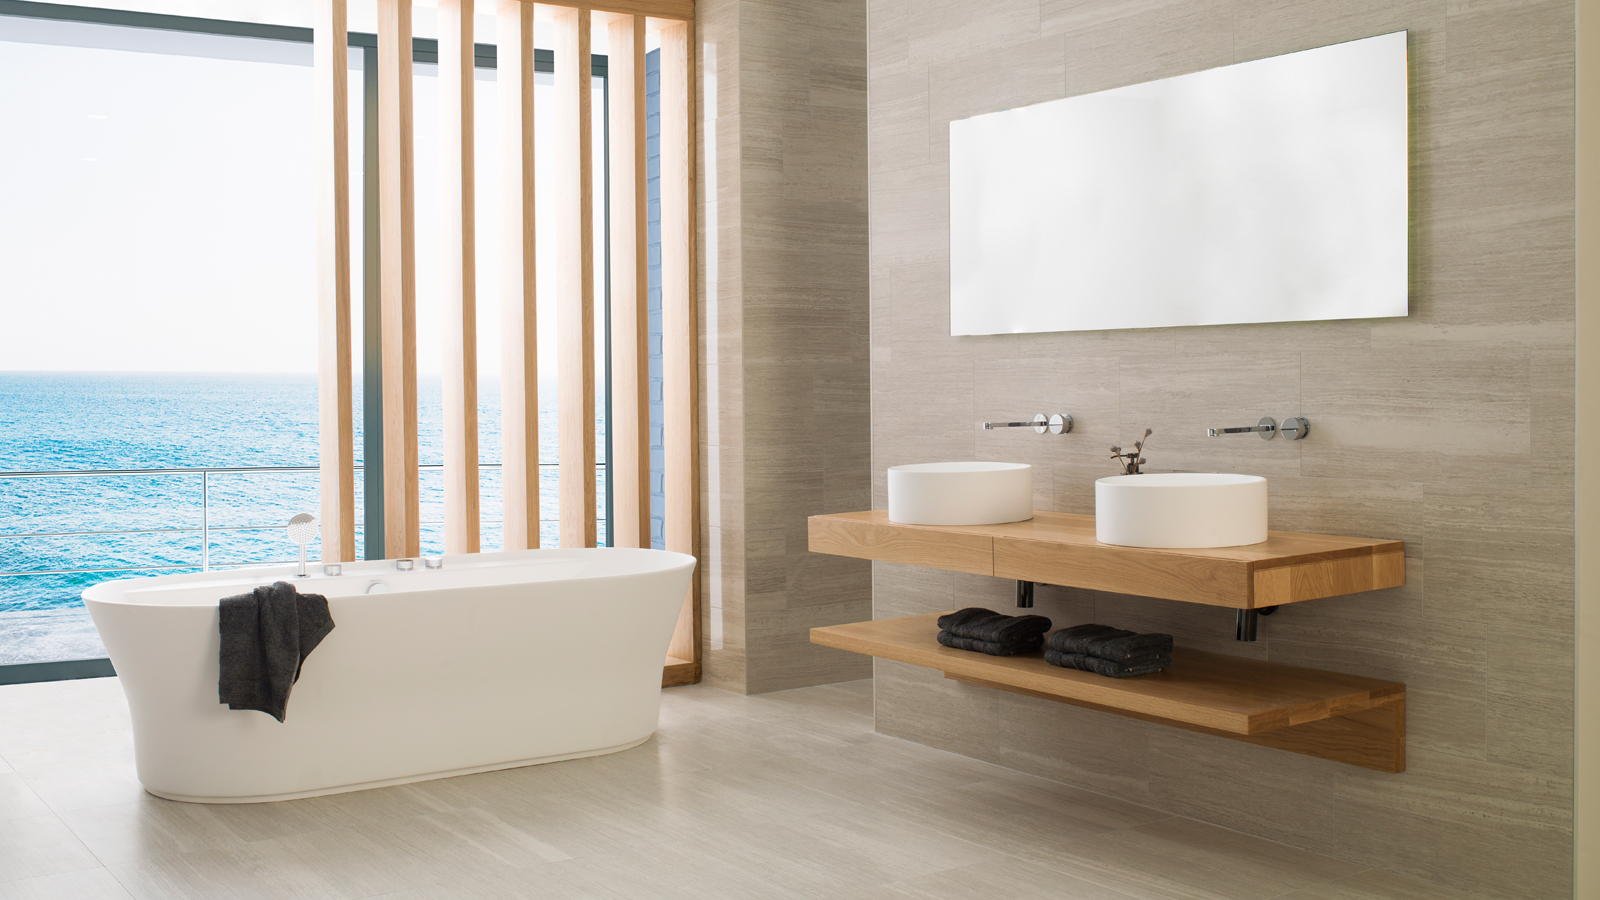 9 Krion baths for an on-trend bathroom